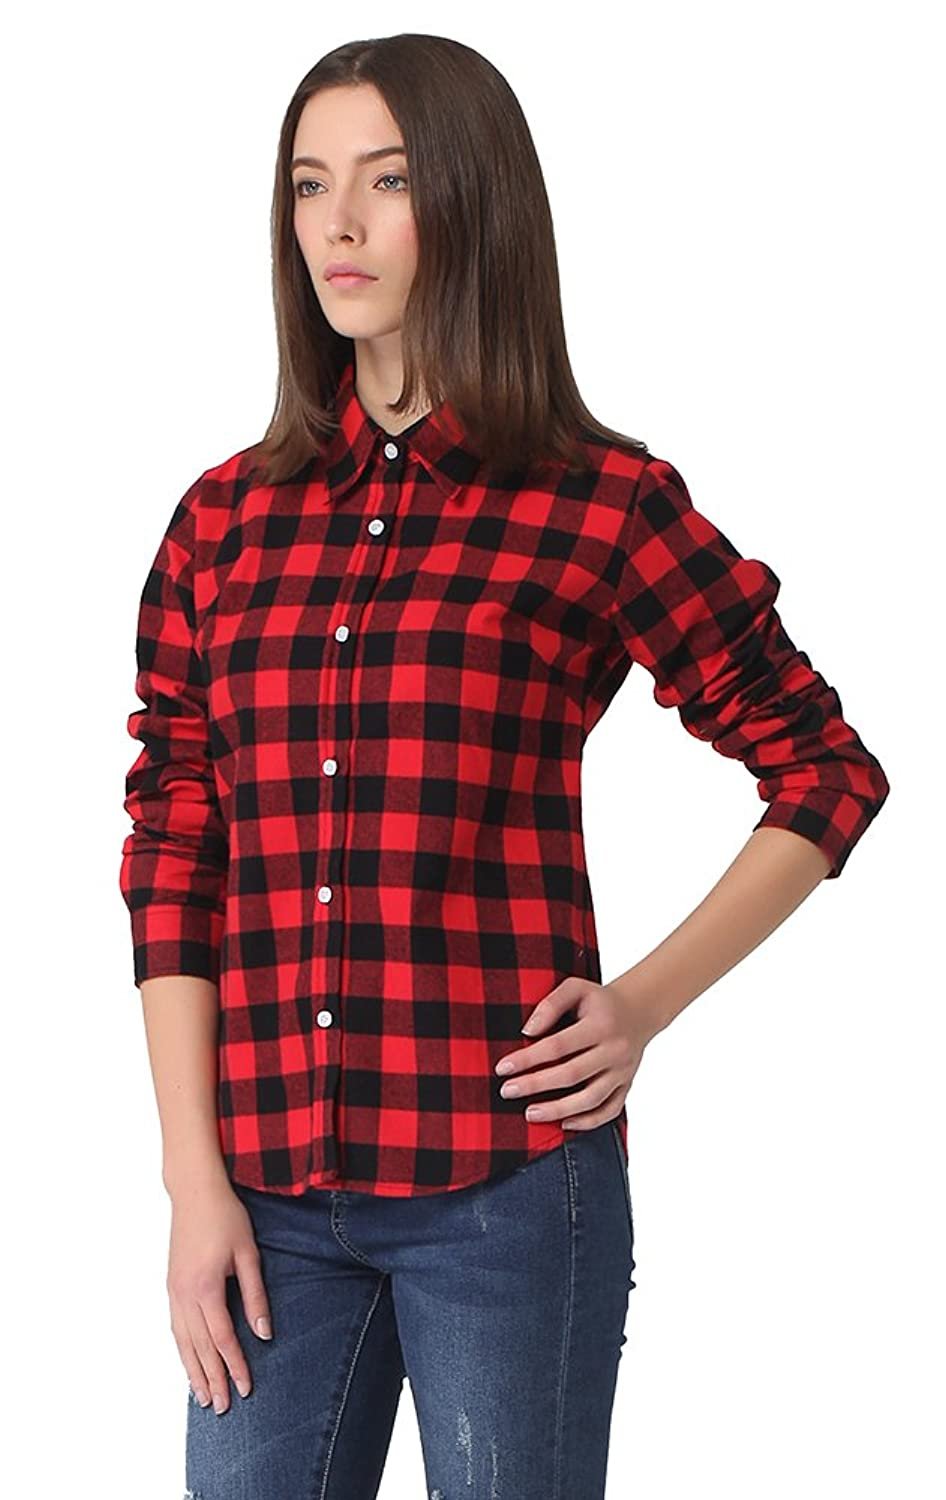 MEYKISS Women's Long-Sleeve Plaid Flannel Shirt at Amazon Women's ...